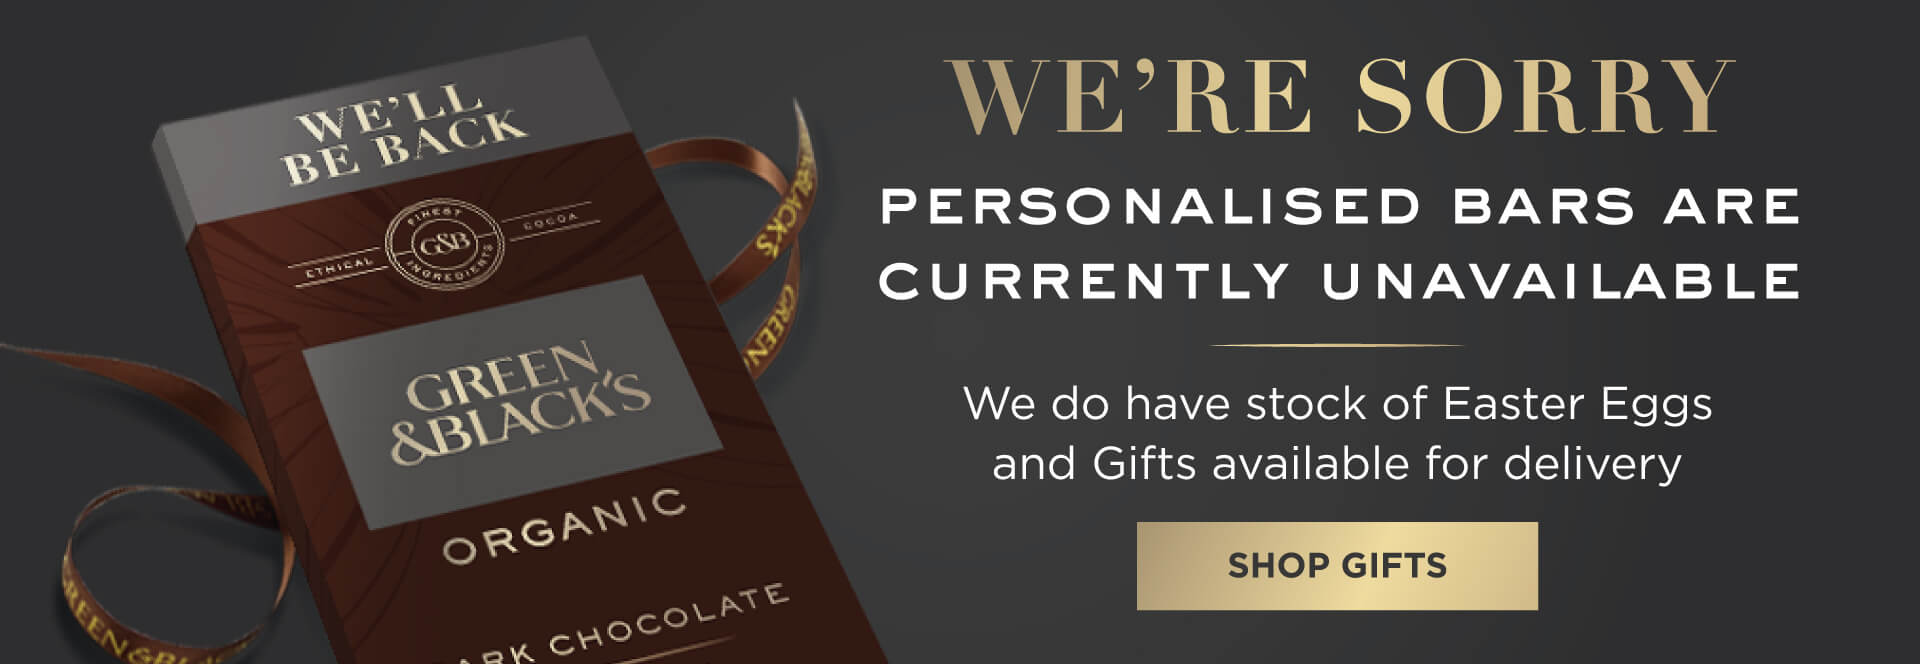 Green&Black's personalised chocolate